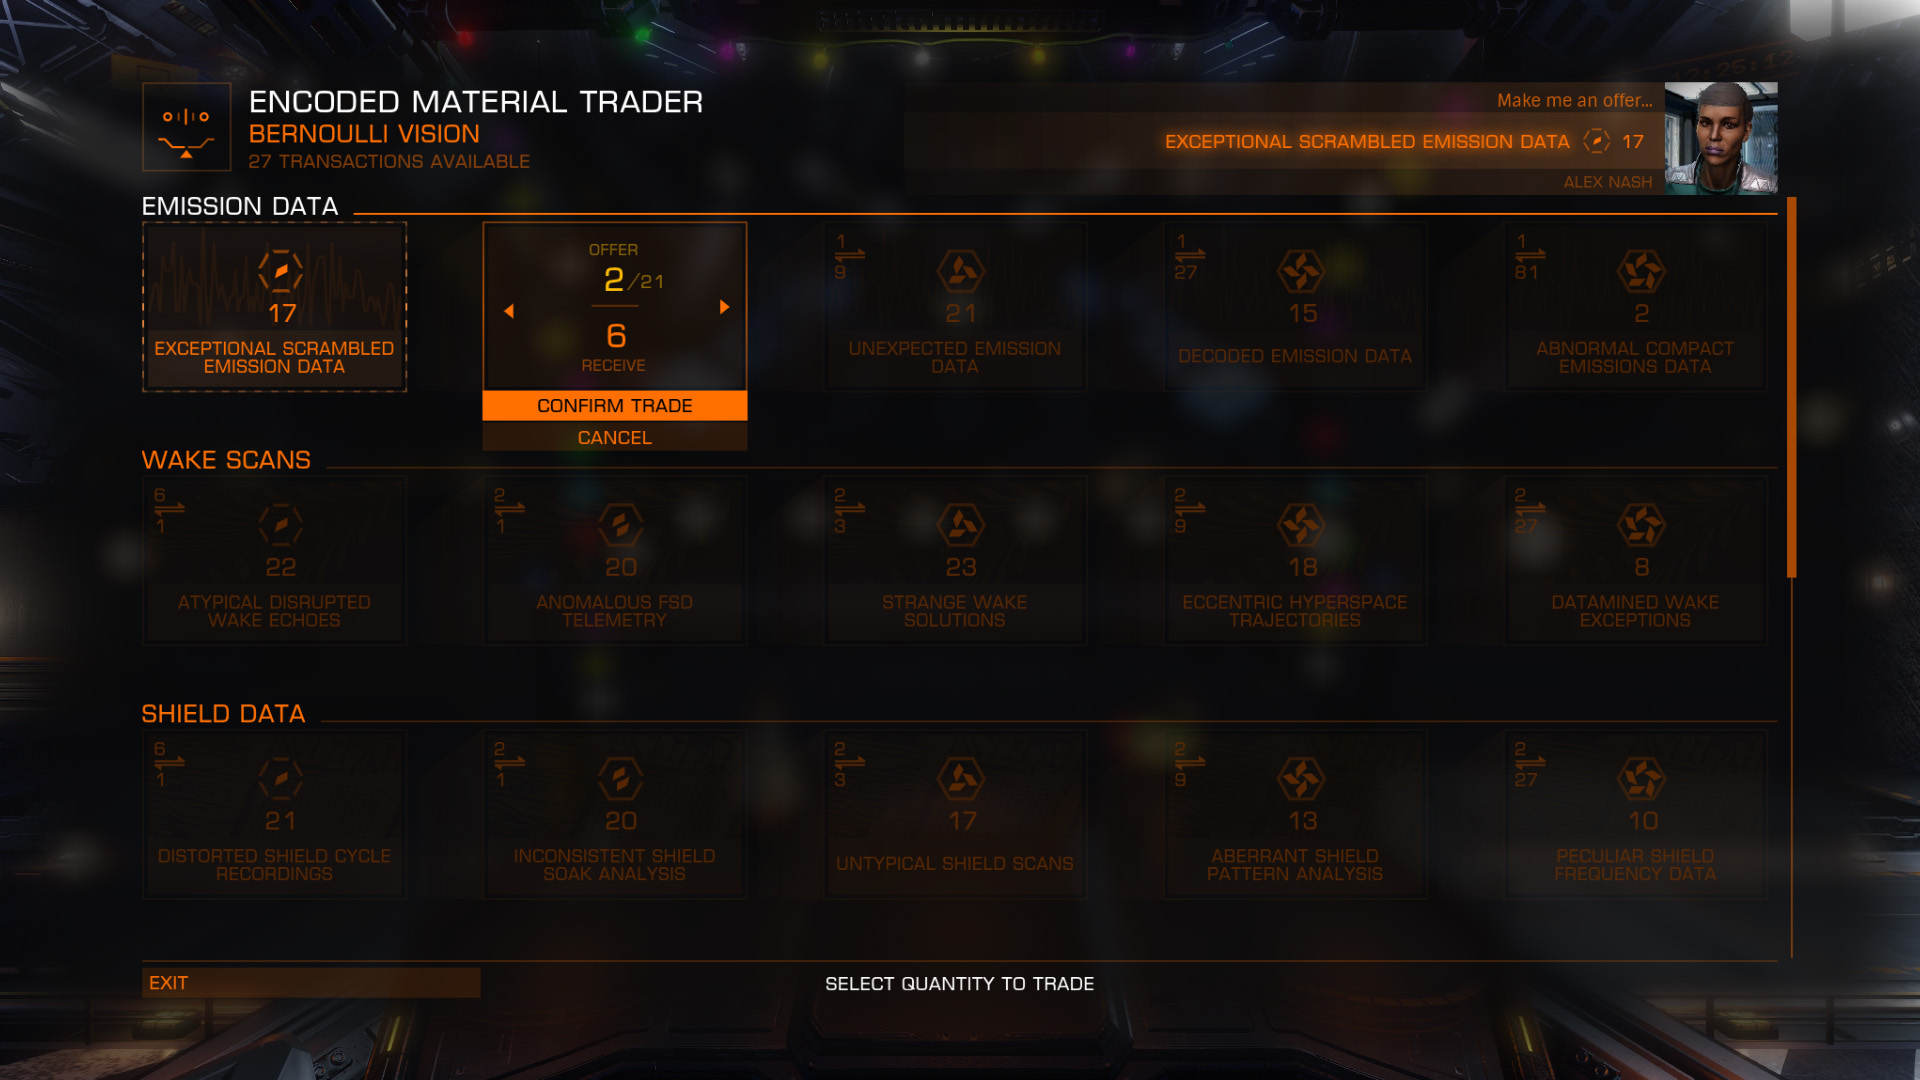 Elite: Dangerous beginner's guide: a screenshot showing how to use the materials trader